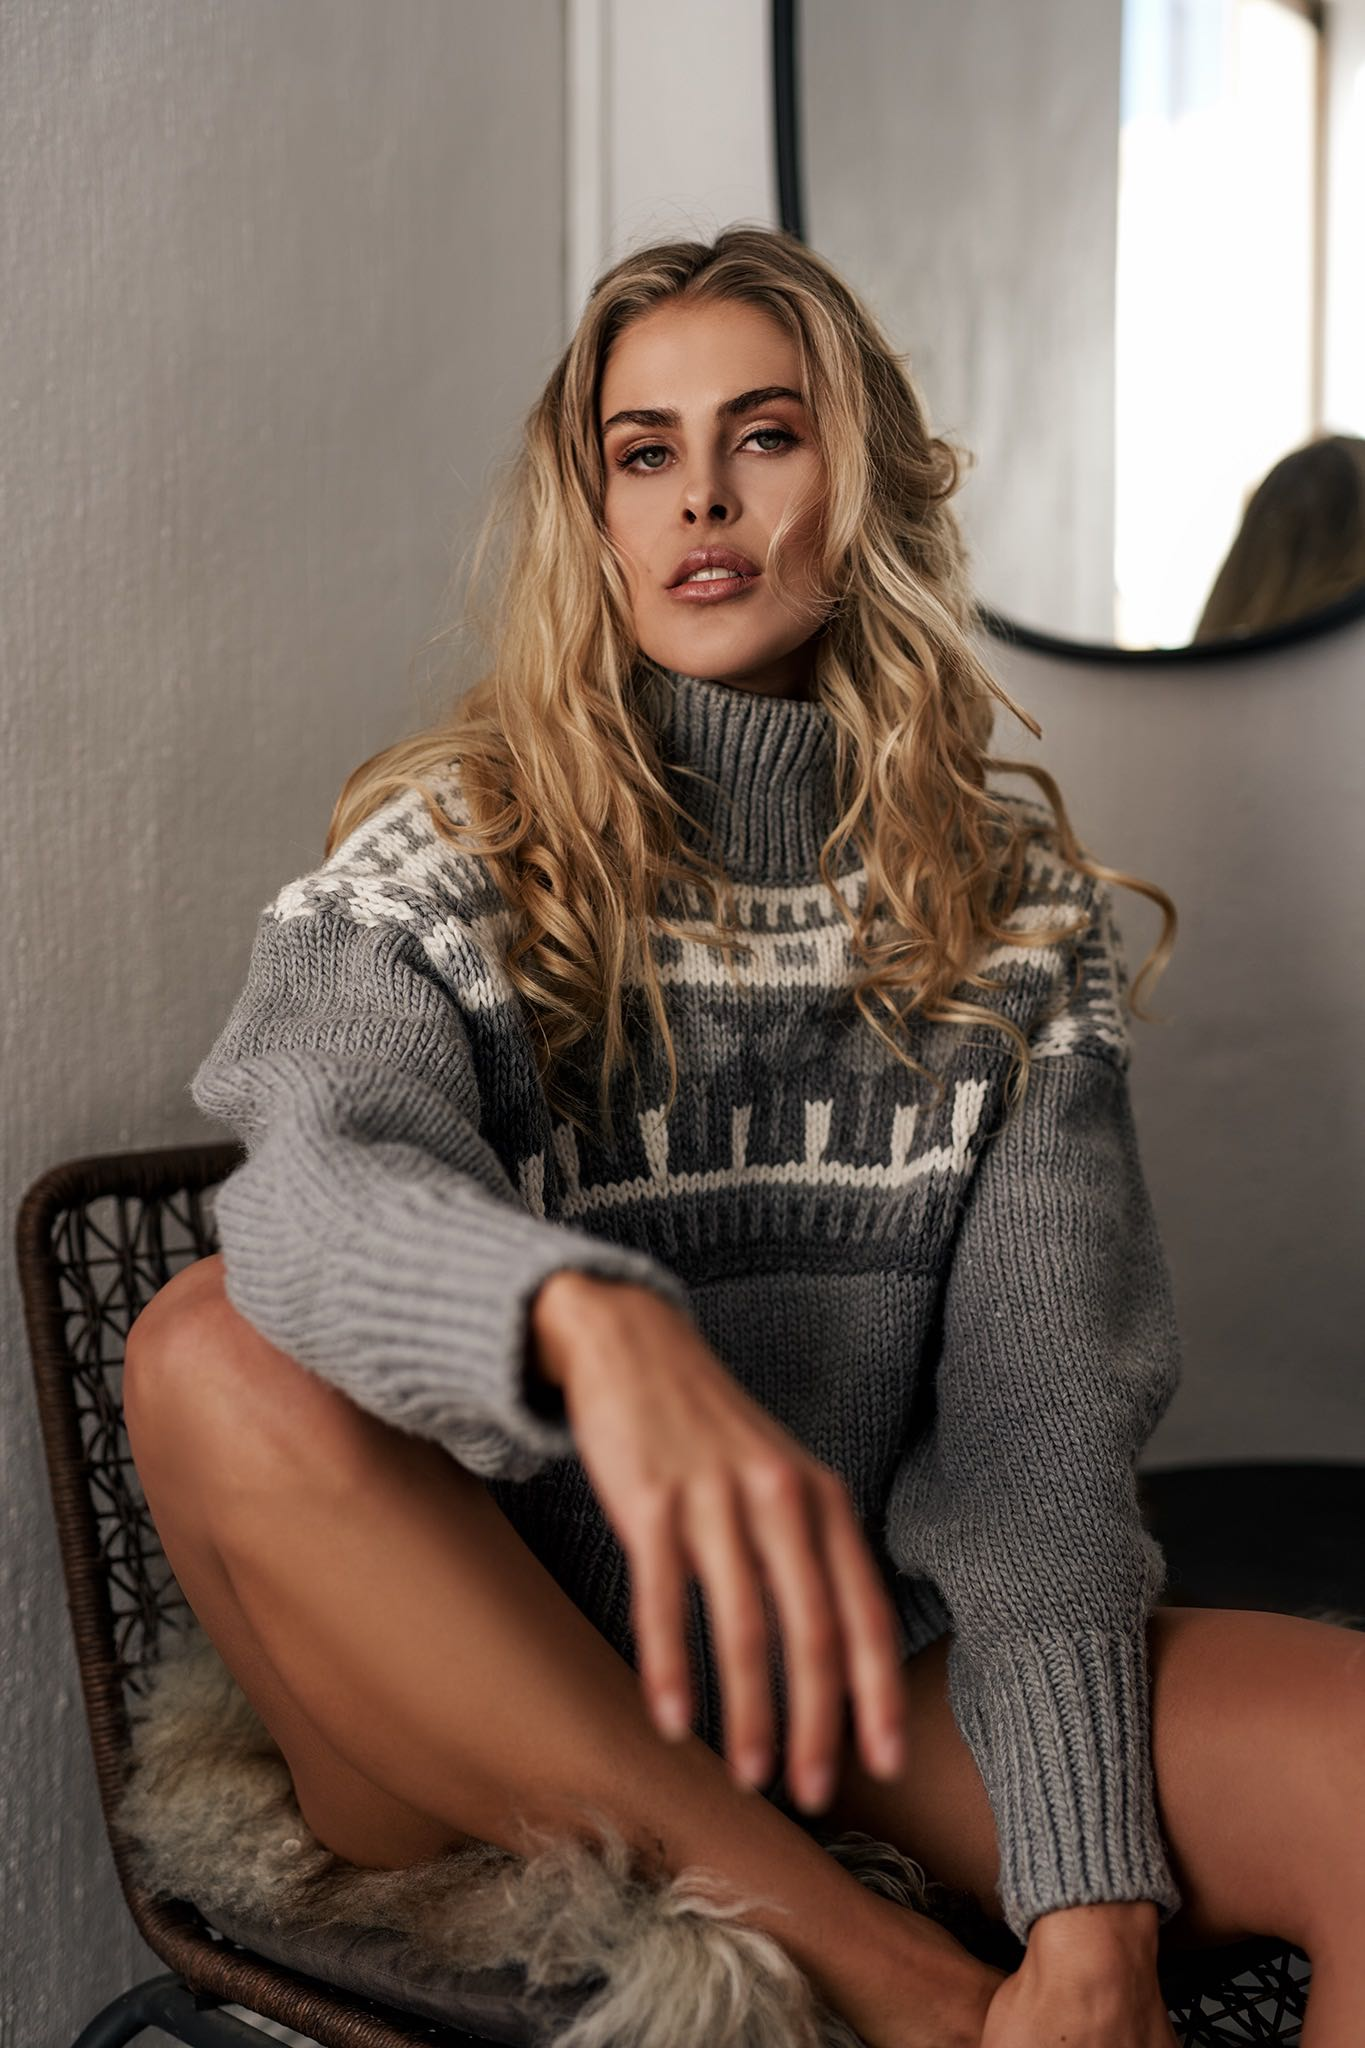 Our SA Girls feature with Katelyn Barkhuizen